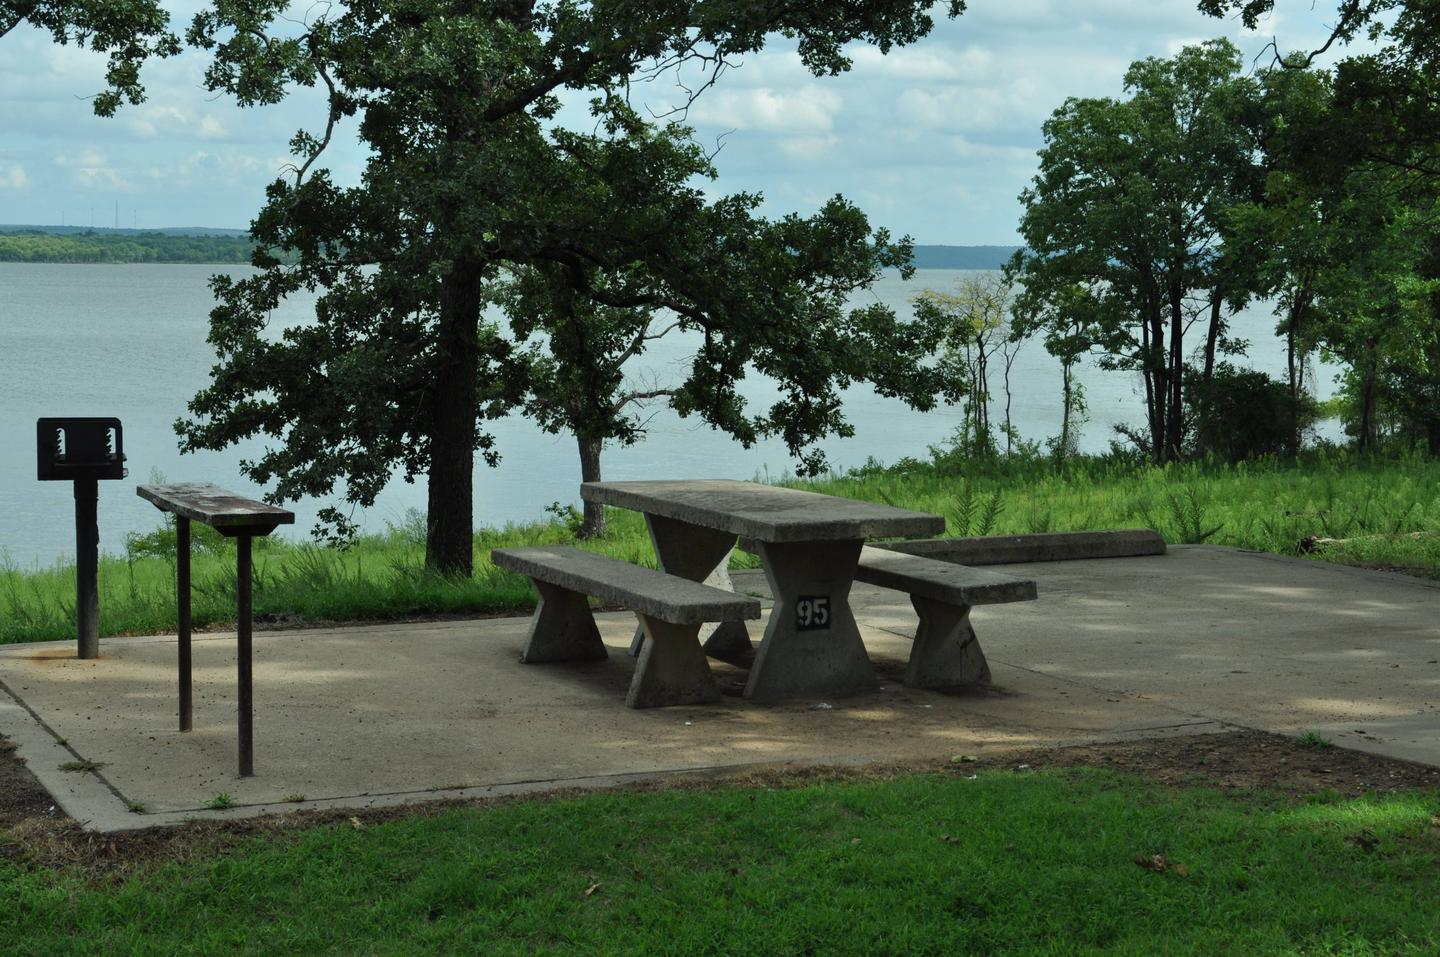 Site 95 has a concrete picnic table, pedestal grill and utility table.Site 95 - Taylor Ferry